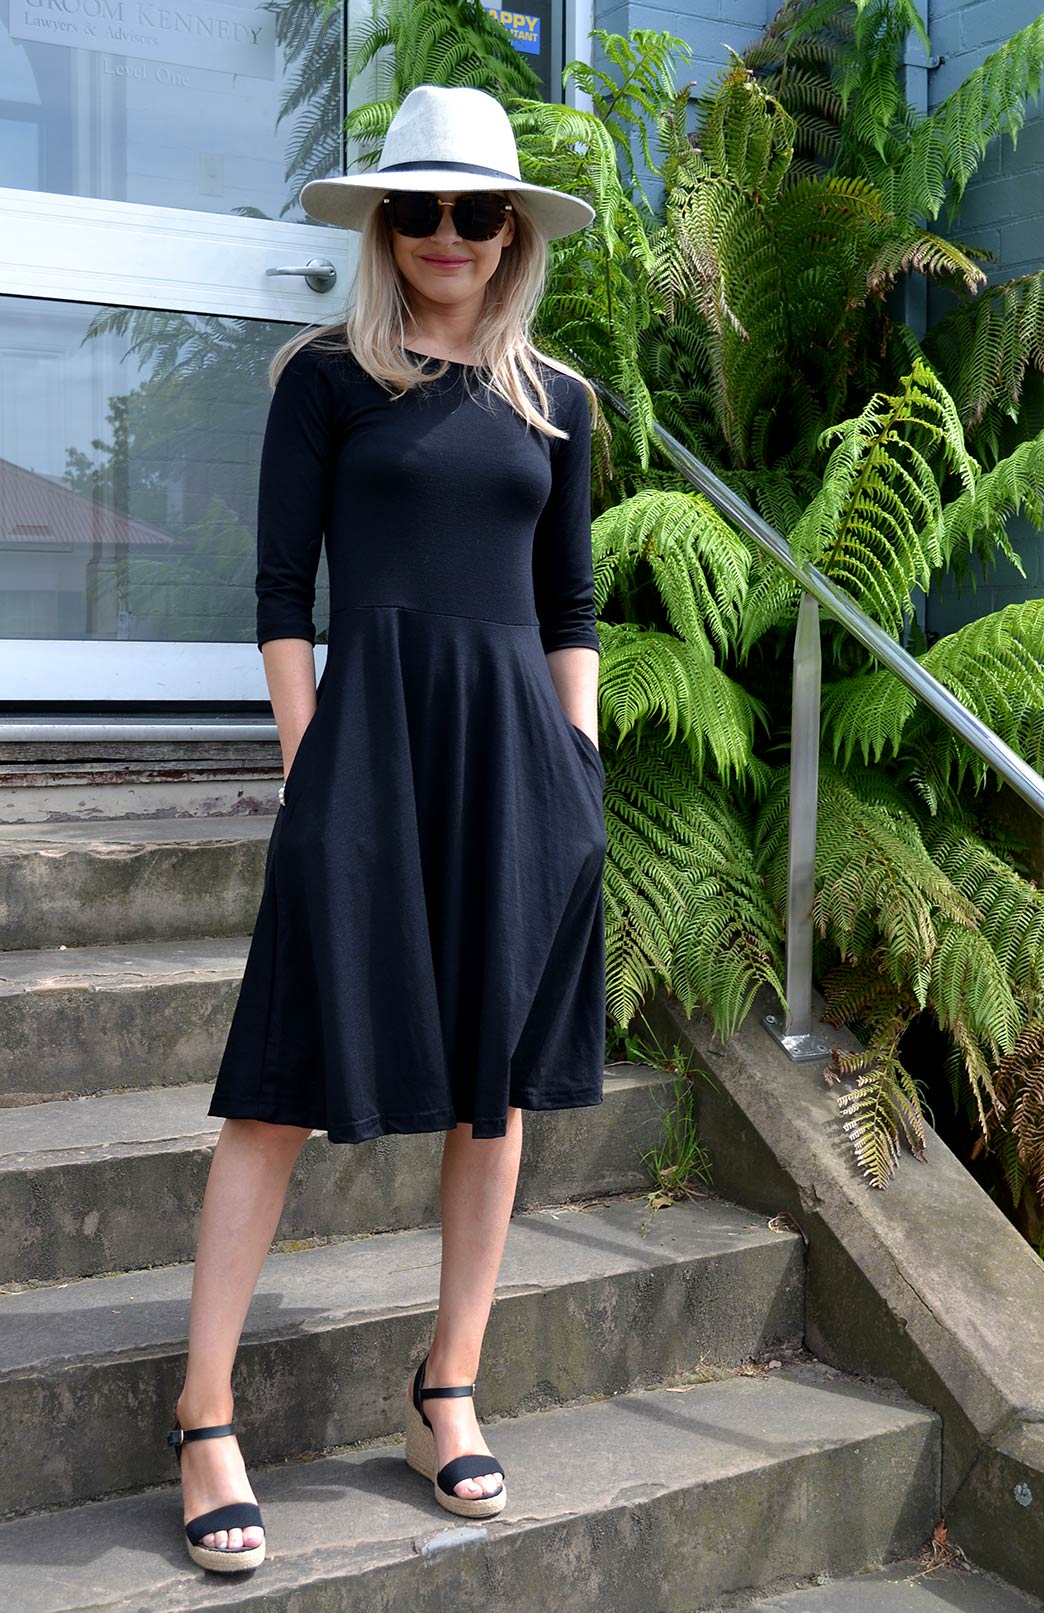 Mary Dress - Women's Black Knee Length 3/4 Sleeved Fit and Flare Merino Wool Dress with Pockets - Smitten Merino Tasmania Australia